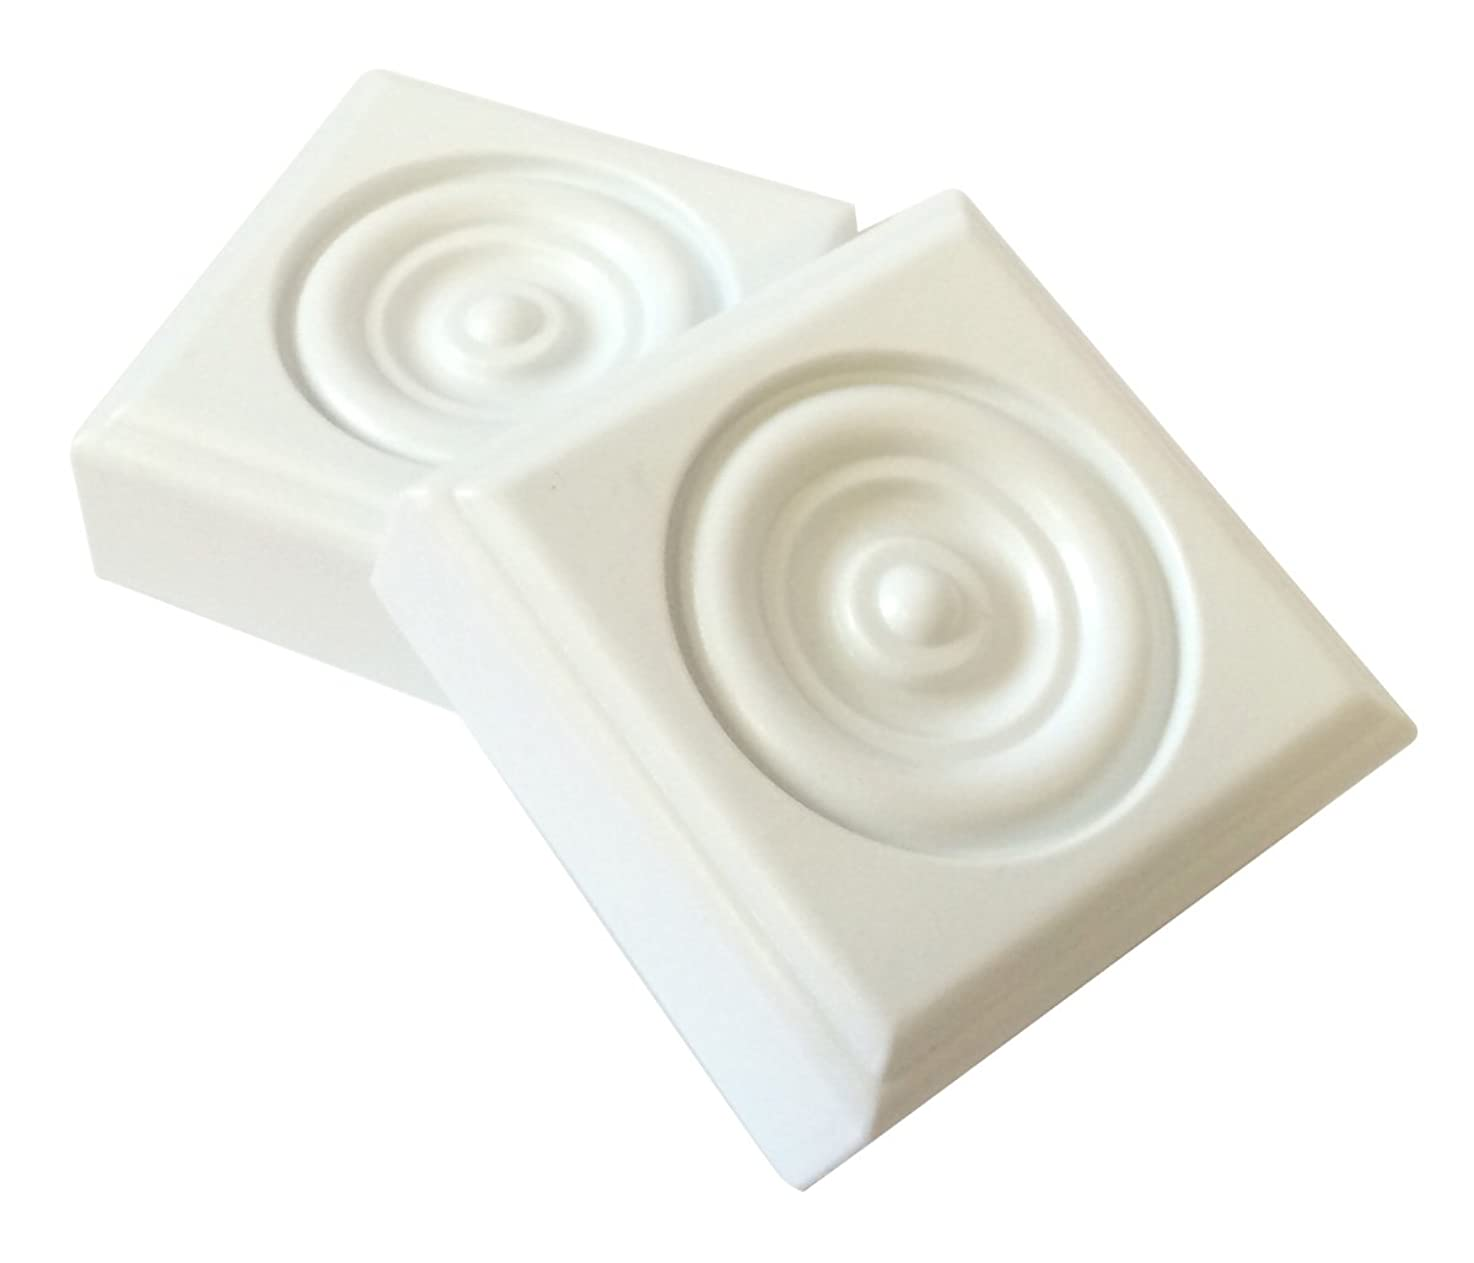 2 Piece Minute Molding Classic Plastic Block Rosette (2-3/4 in.) for Interior Doors and Windows (83051)